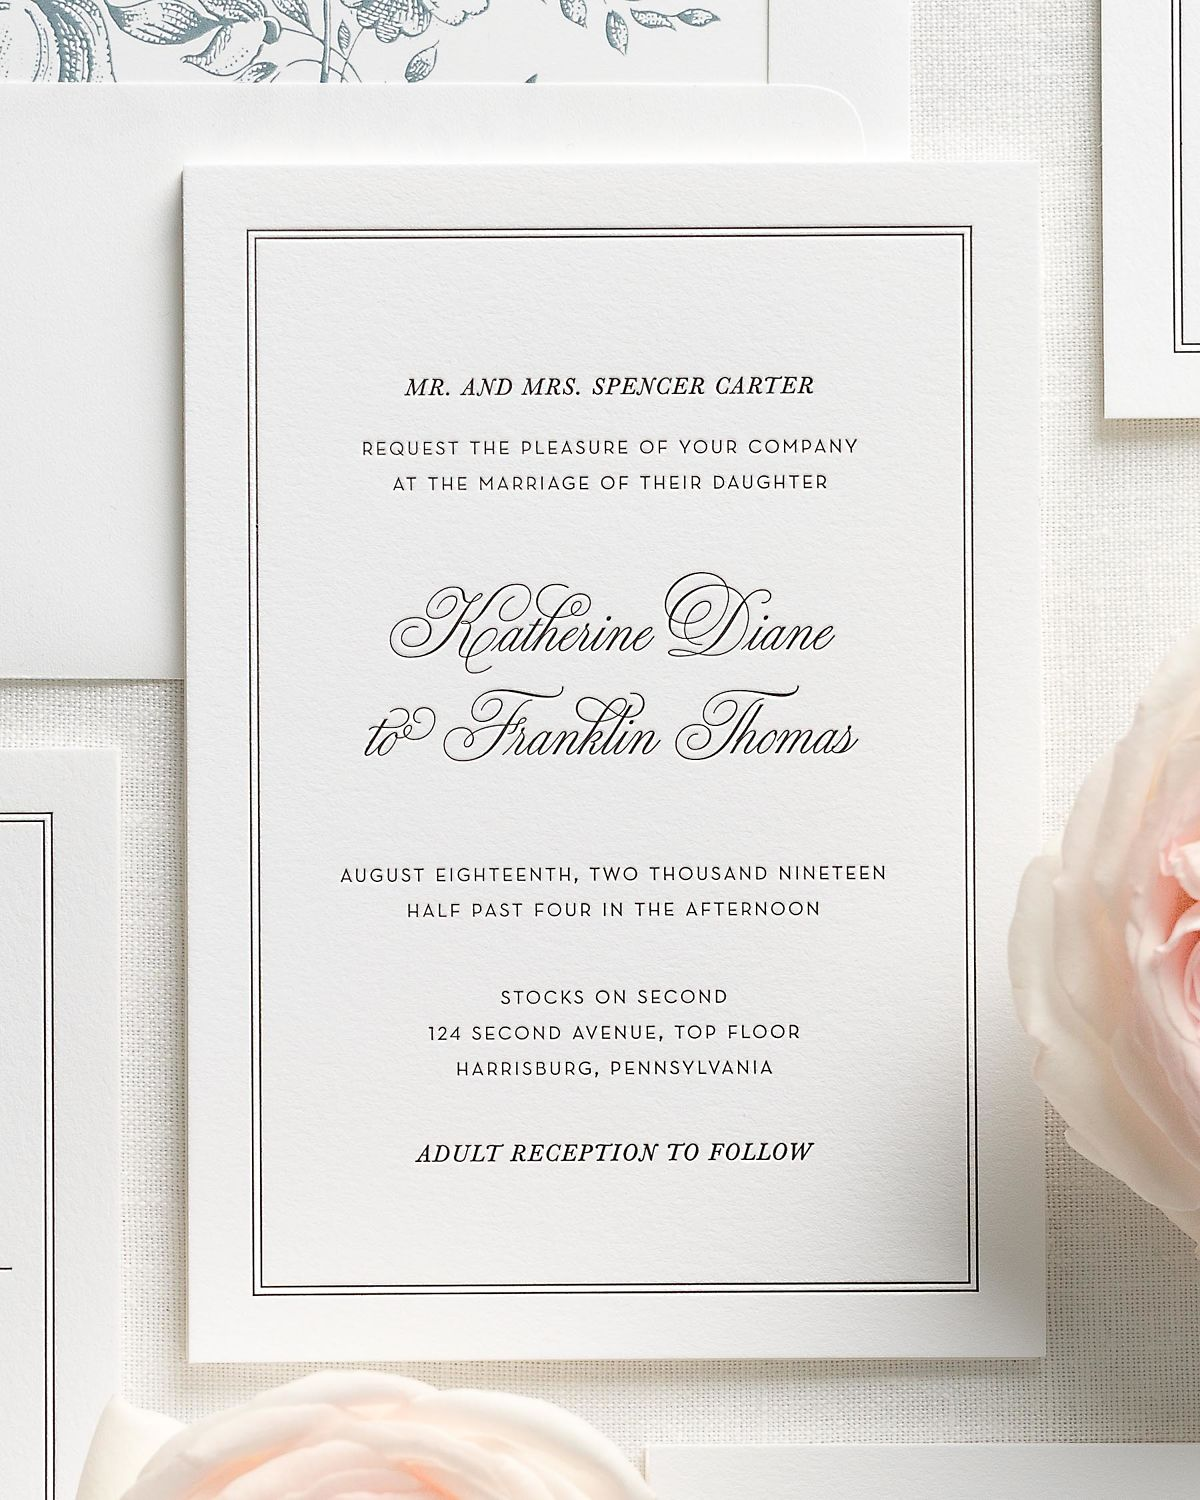 Mineral Wedding Invitation Suite with Letterpress Printing